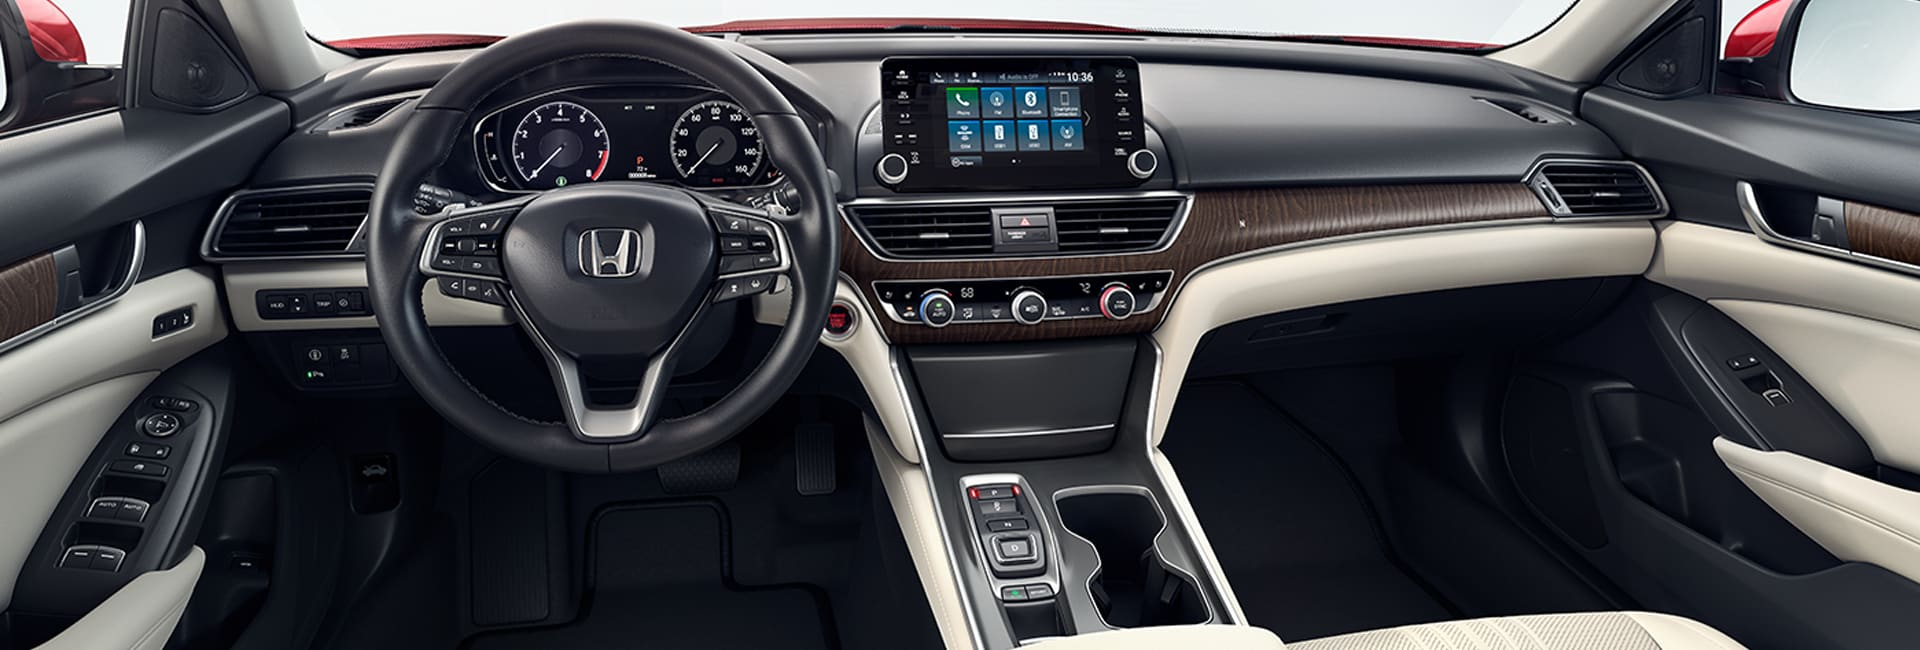 2018 Honda Accord Interior Features